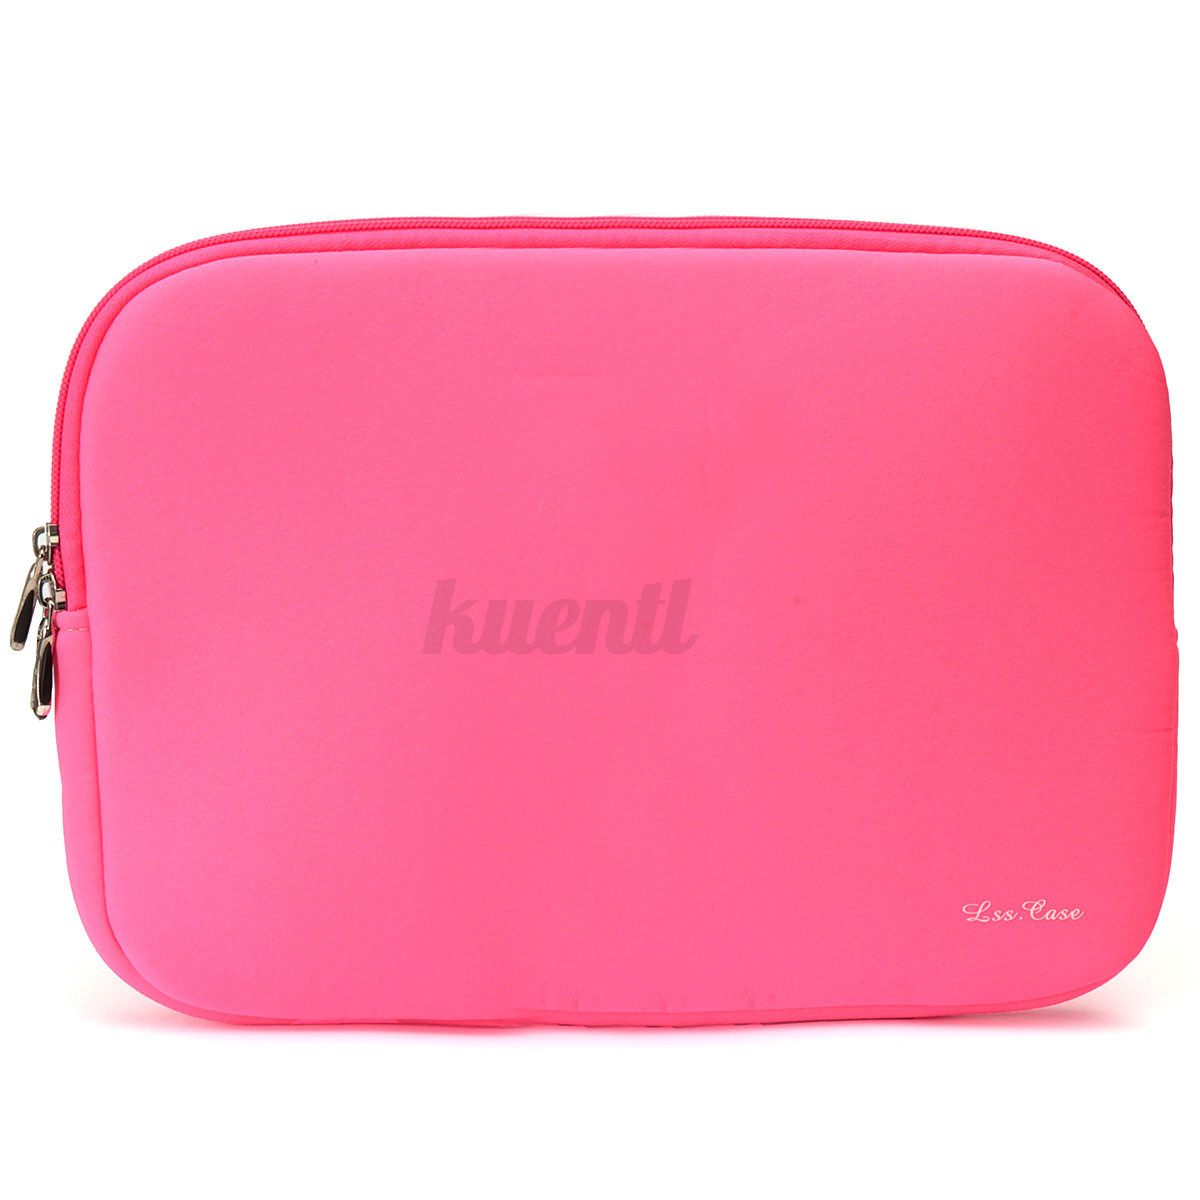 Funda cubierta bolsa de ordenador port til para apple 11 13 14 39 39 macbook dell hp ebay - Fundas para pc portatil ...